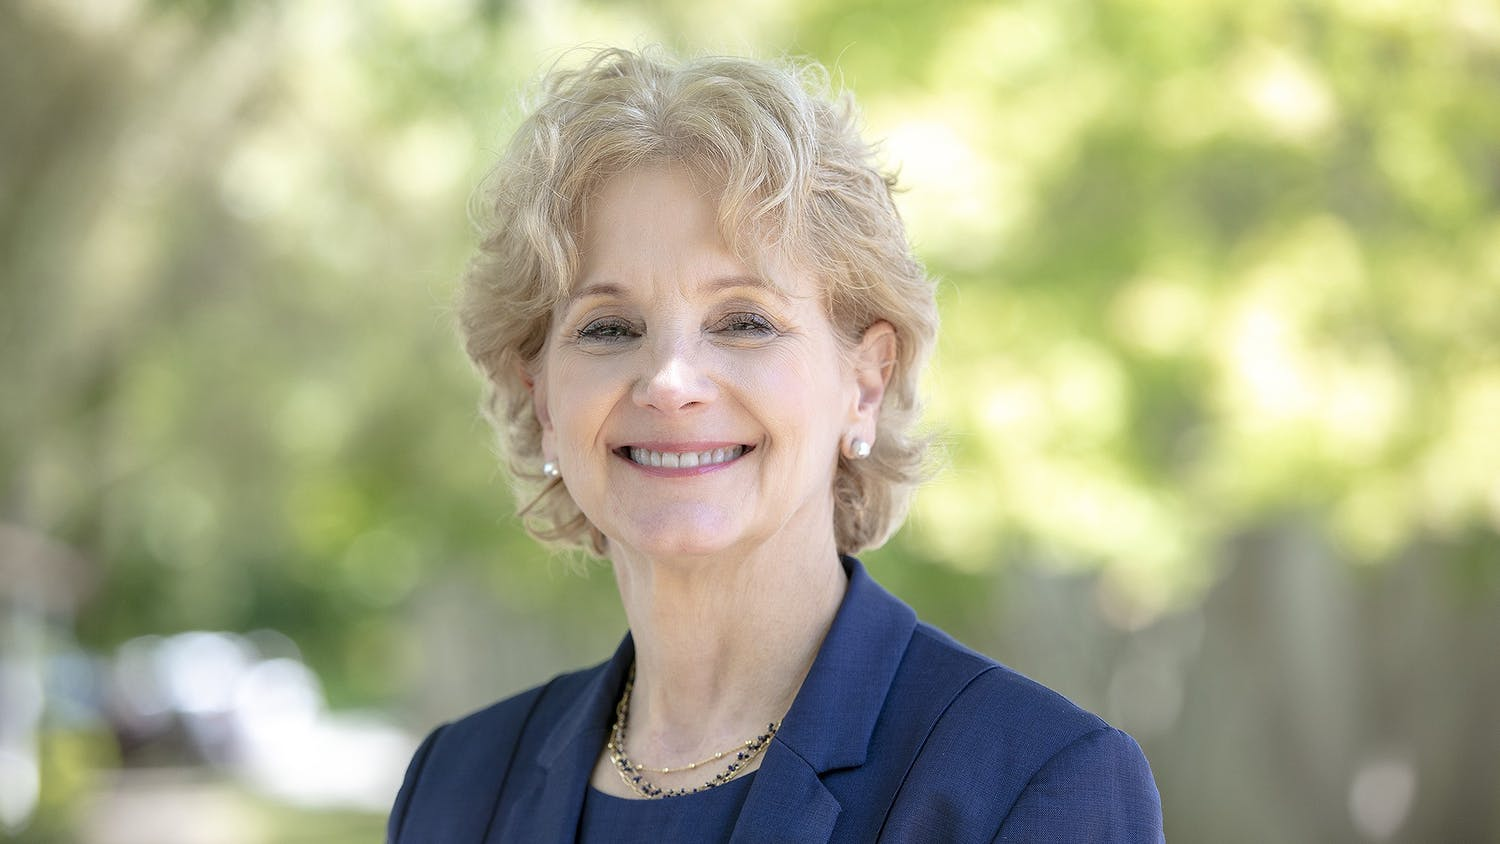 Allison Brashear, dean of the UC Davis School of Medicine, has been named vice president for health sciences at UB.